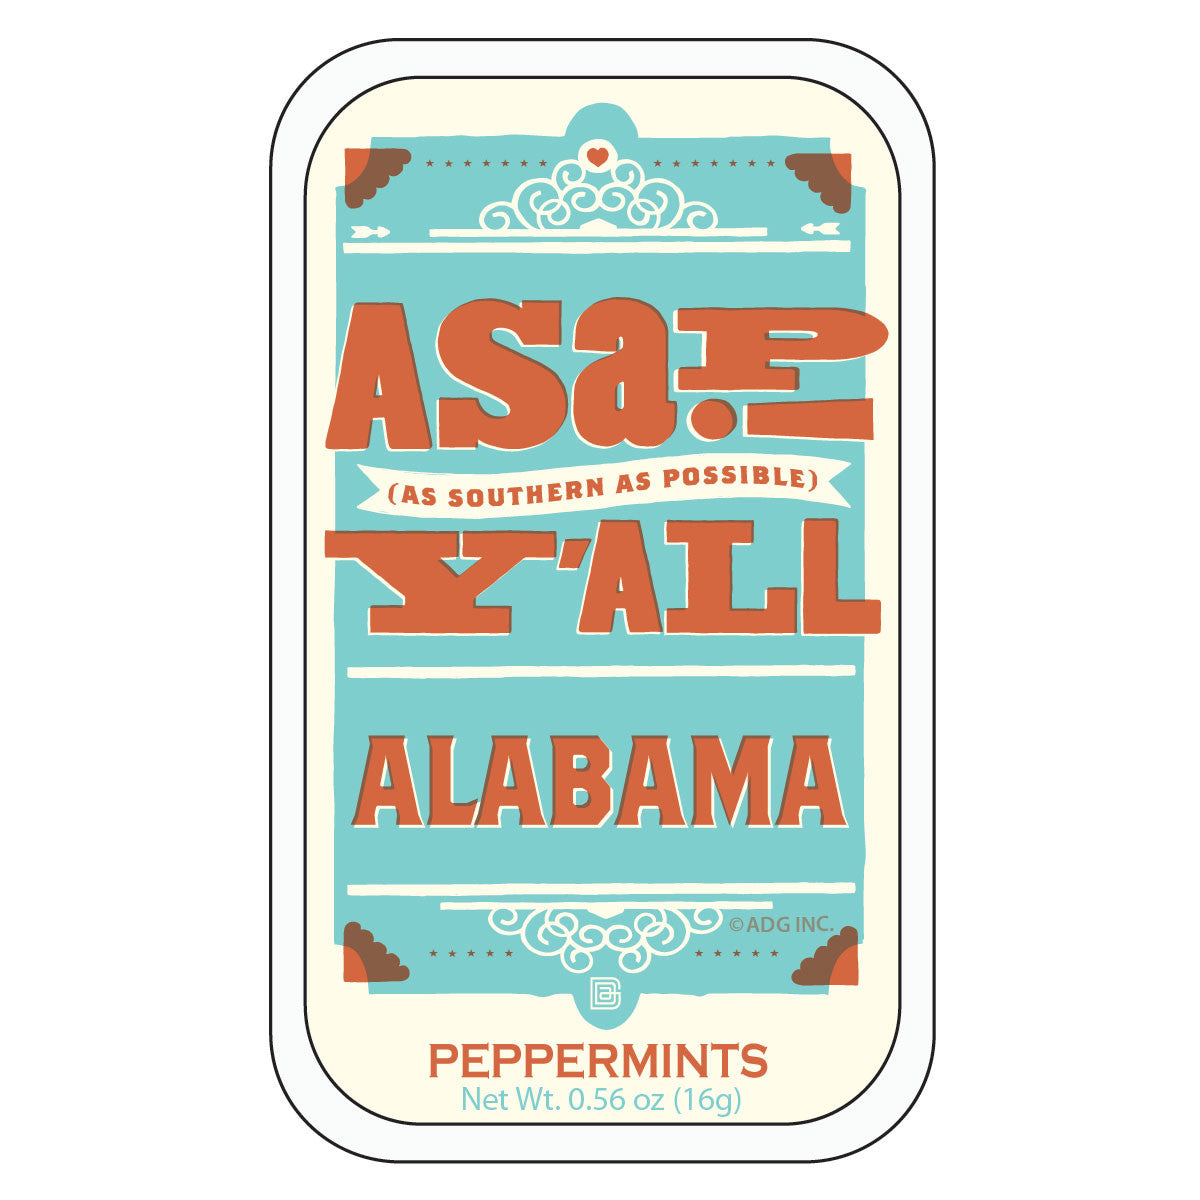 ASAP Alabama - 1338A